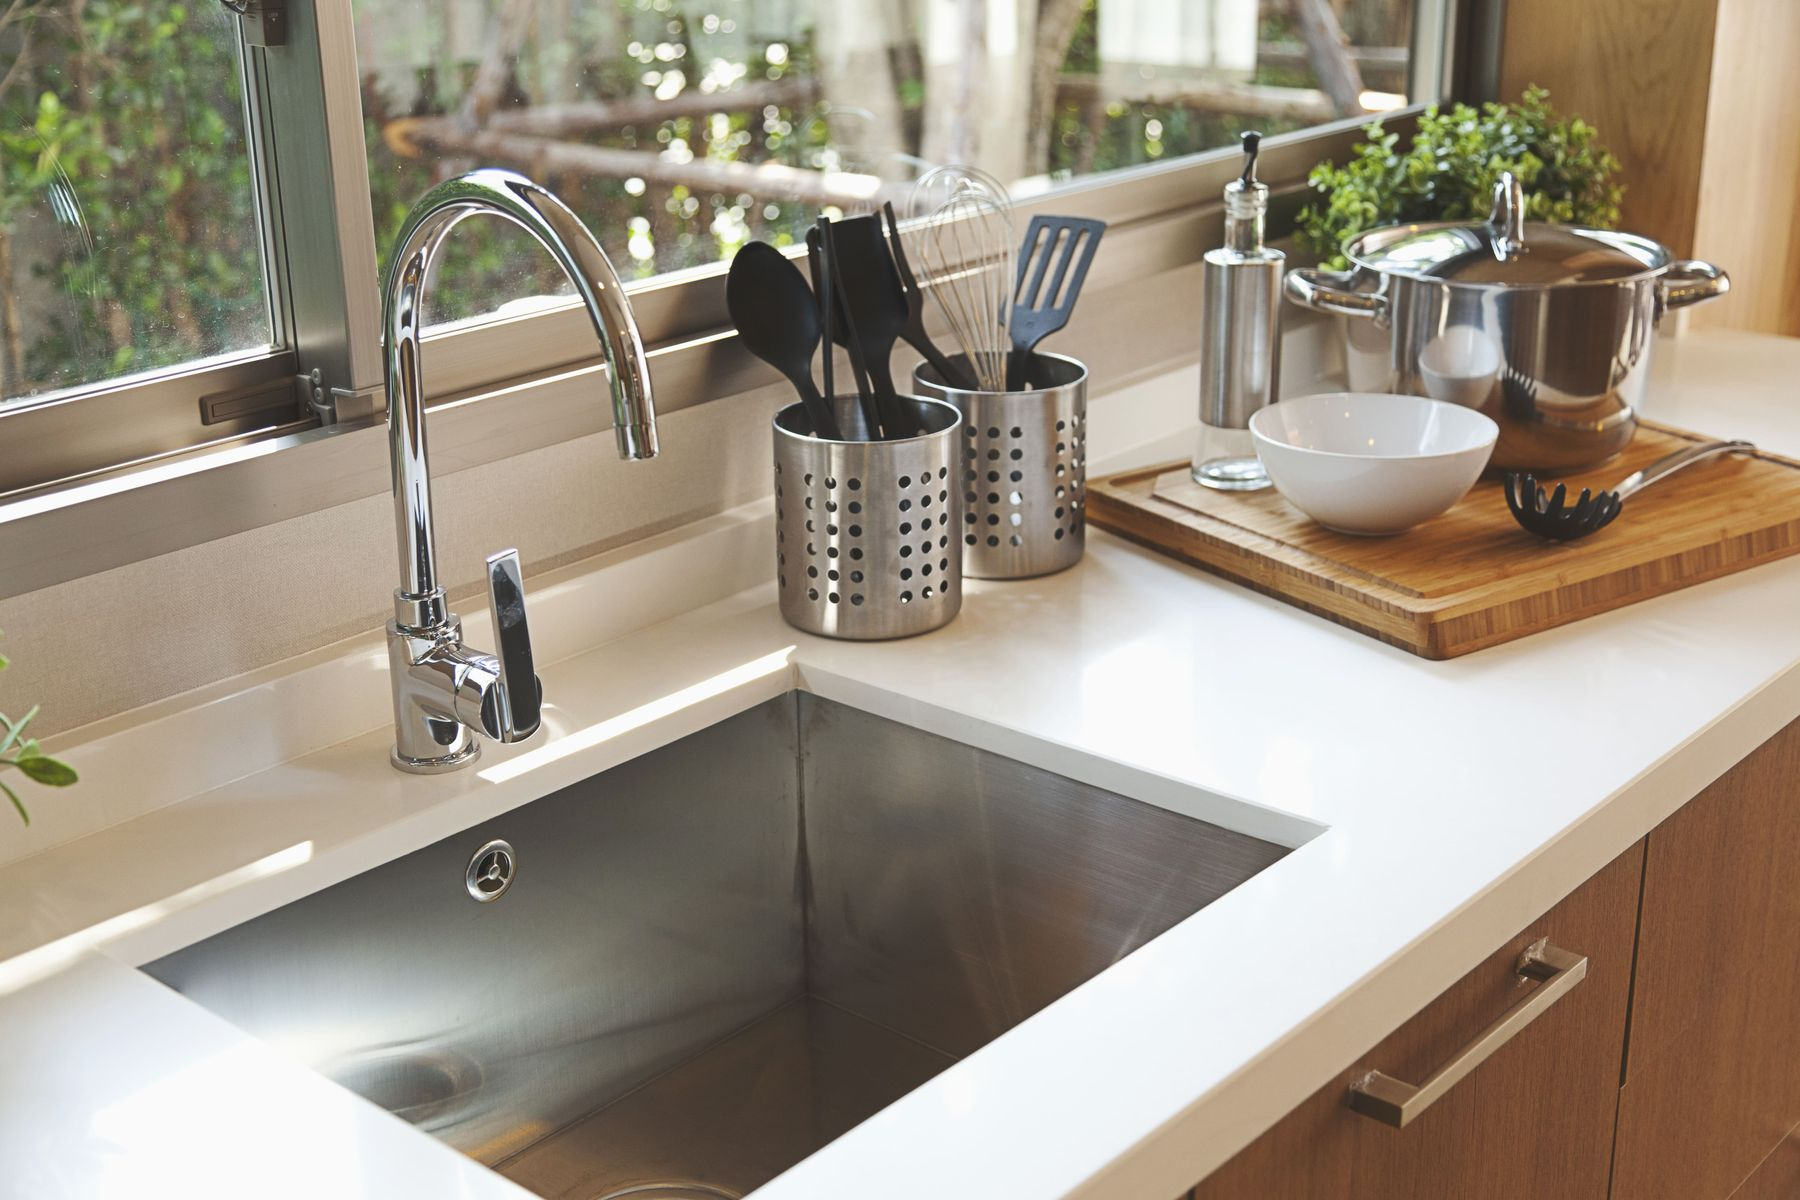 Keep a kitchen smelling fresh & clean